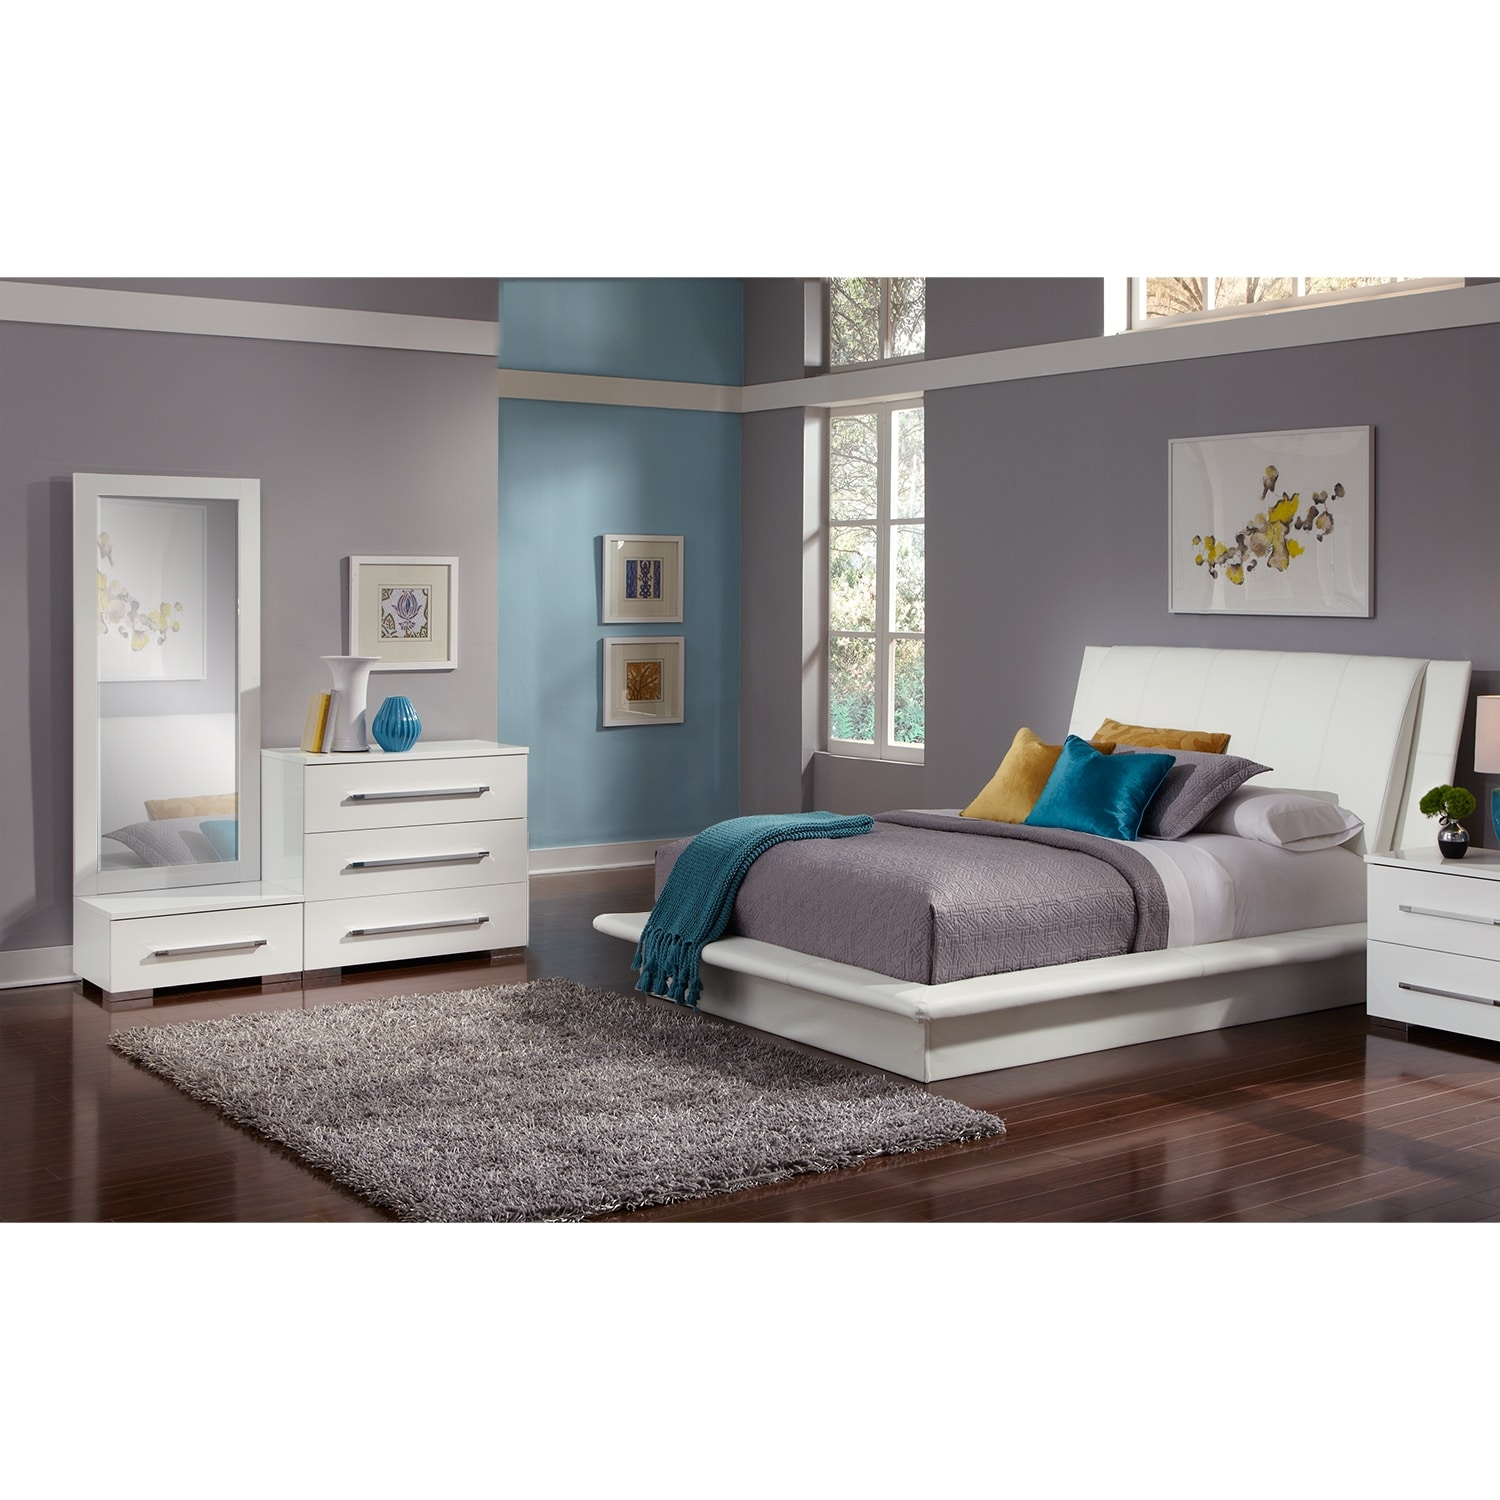 Bedroom Furniture - Dimora White 5 Pc. Queen Bedroom (Alternate)